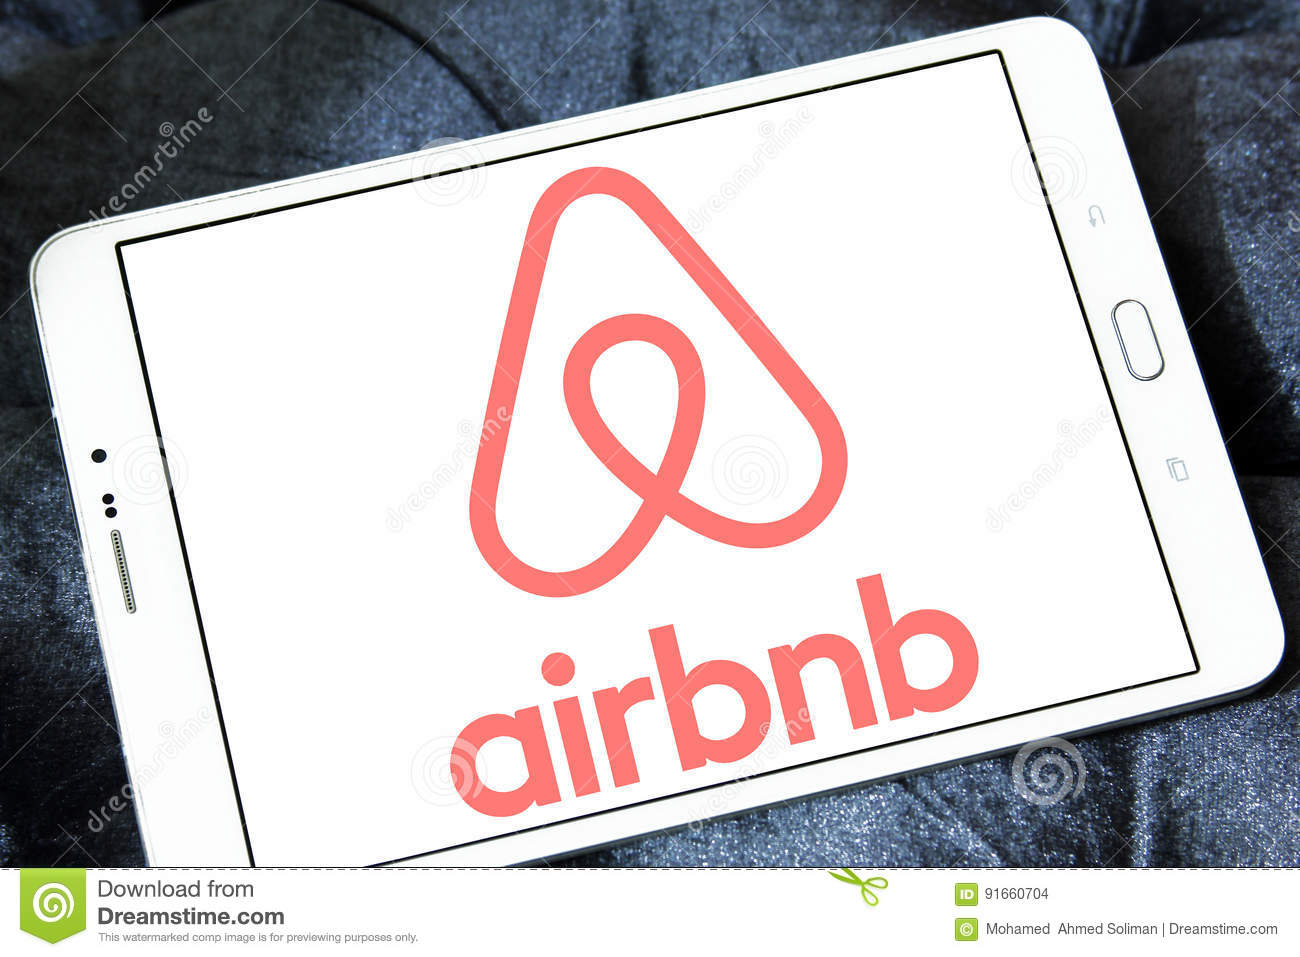 Airbnb logo editorial stock image  Image of hospitality